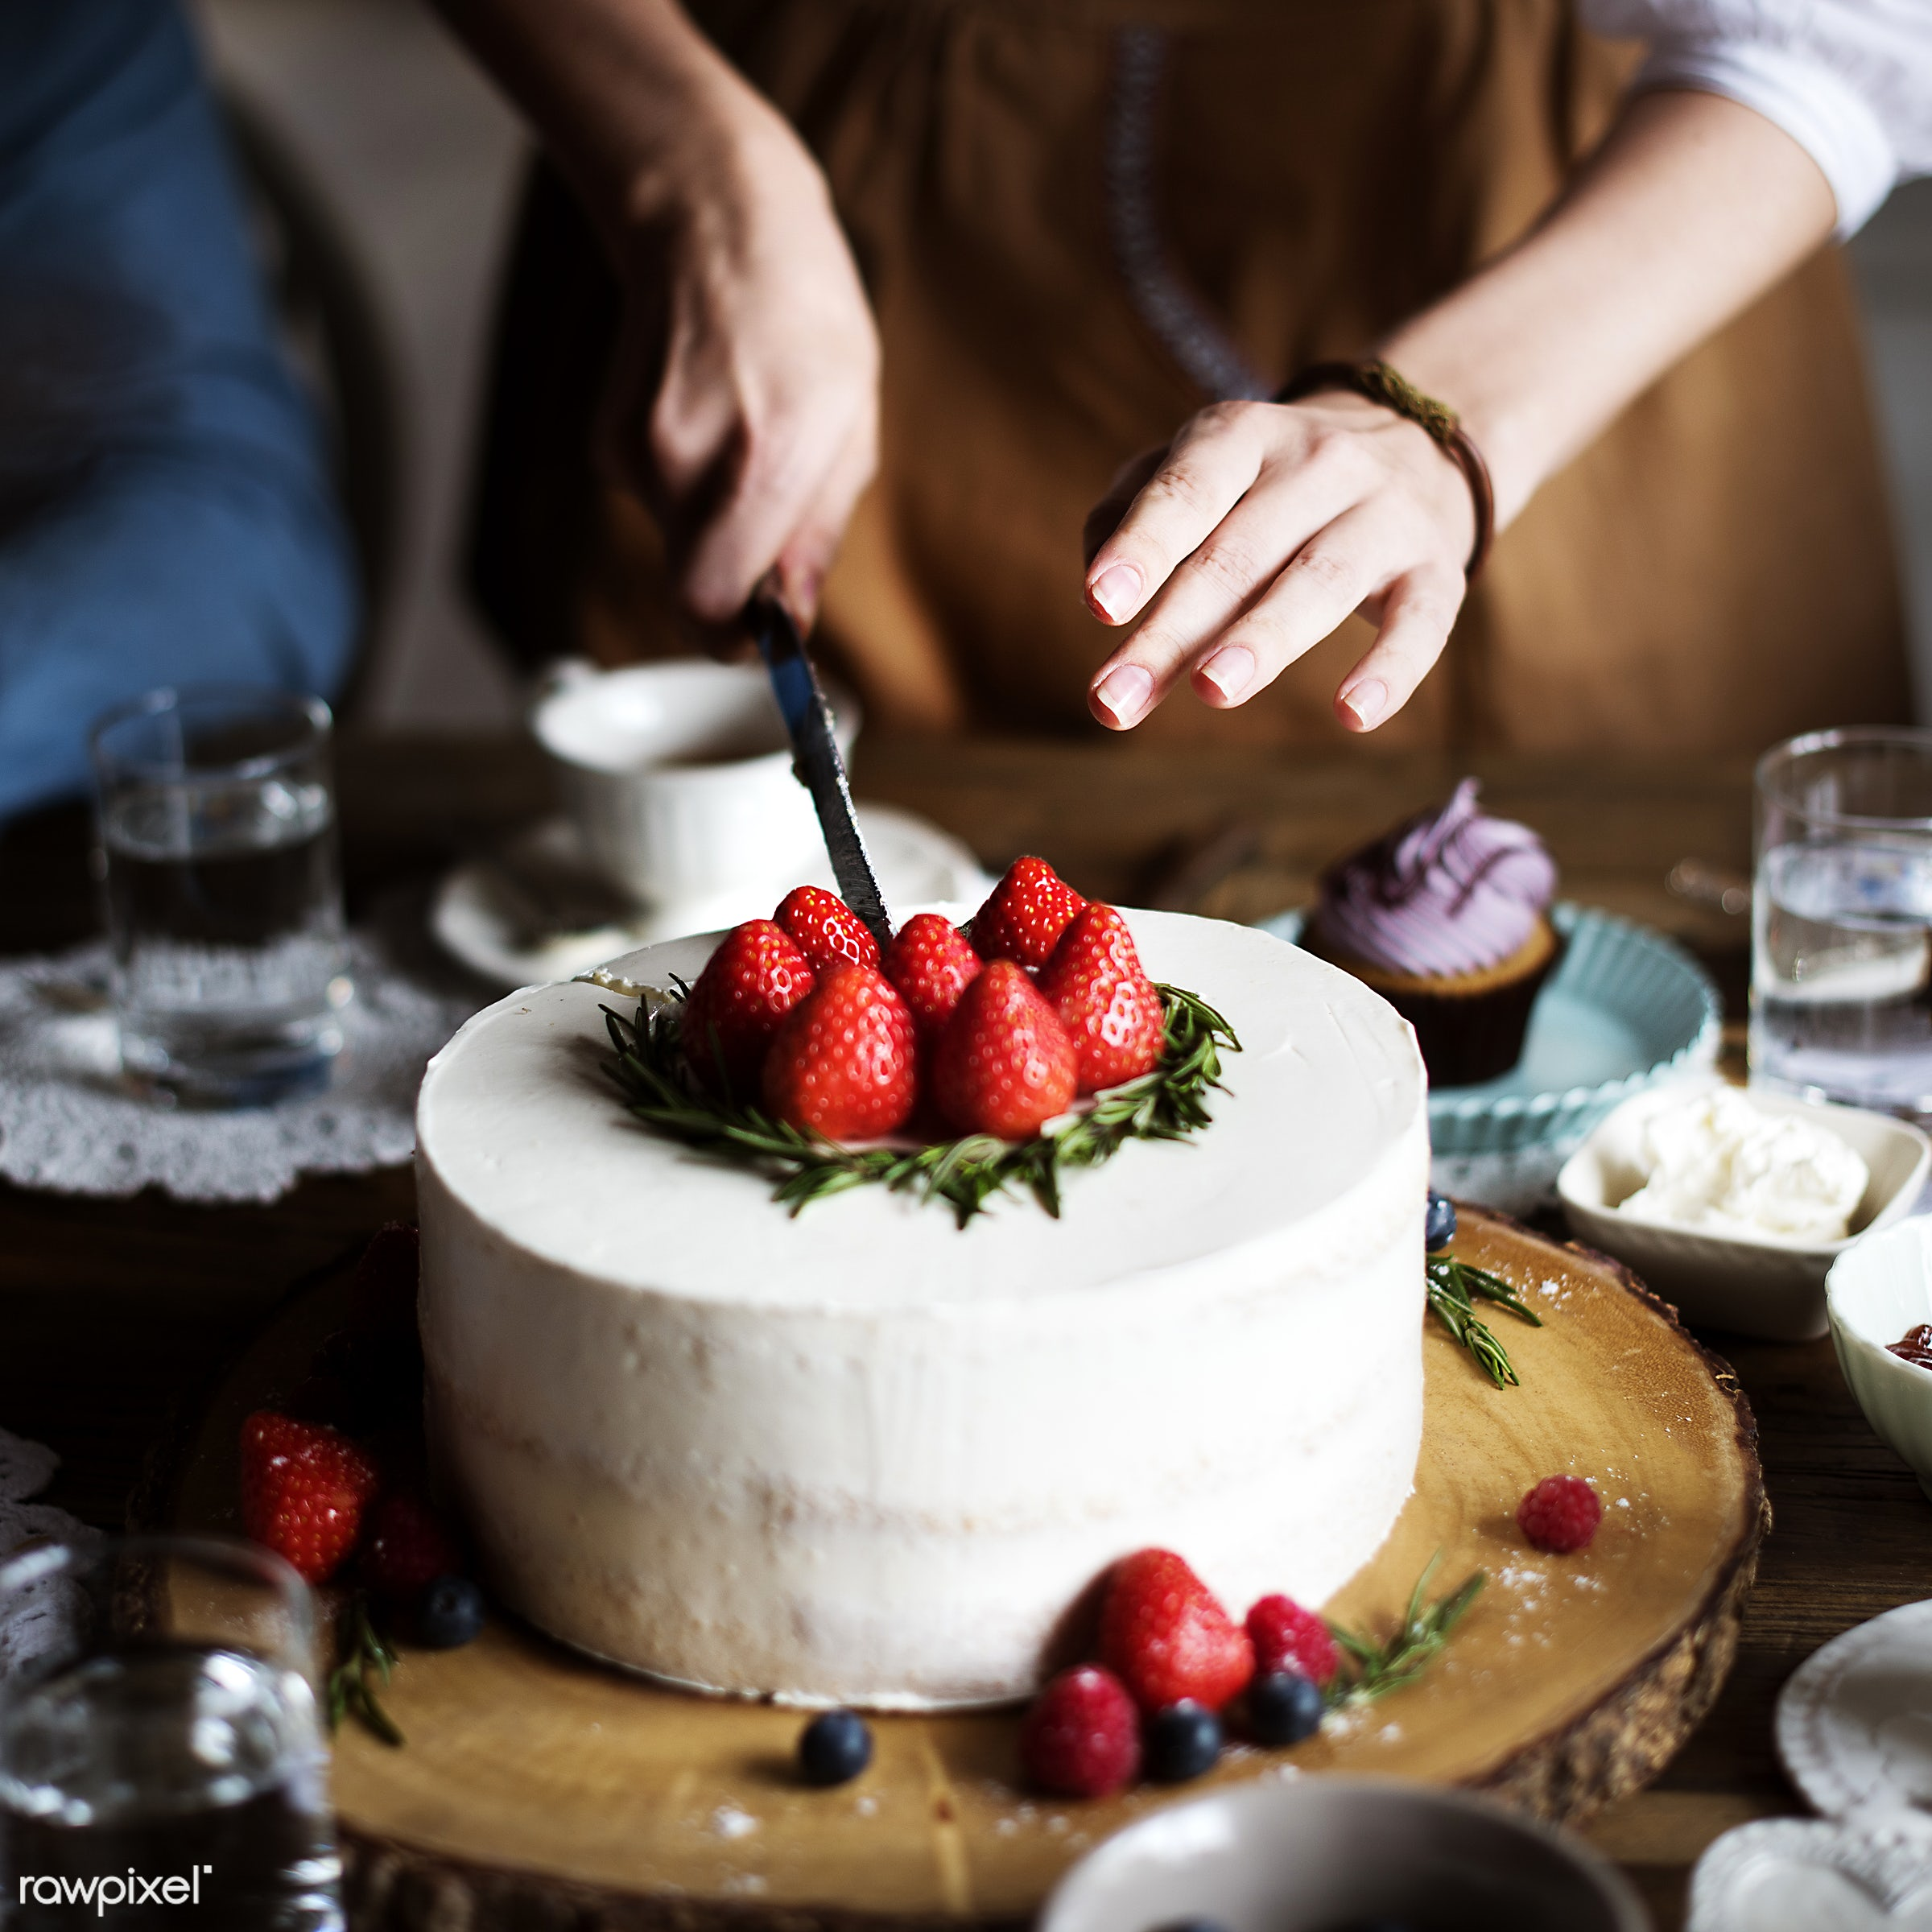 birthday, person, tea, party, people, drinks, sharing, bakery, hands, woman, knife, meal, dessert, water, cake, decorate,...